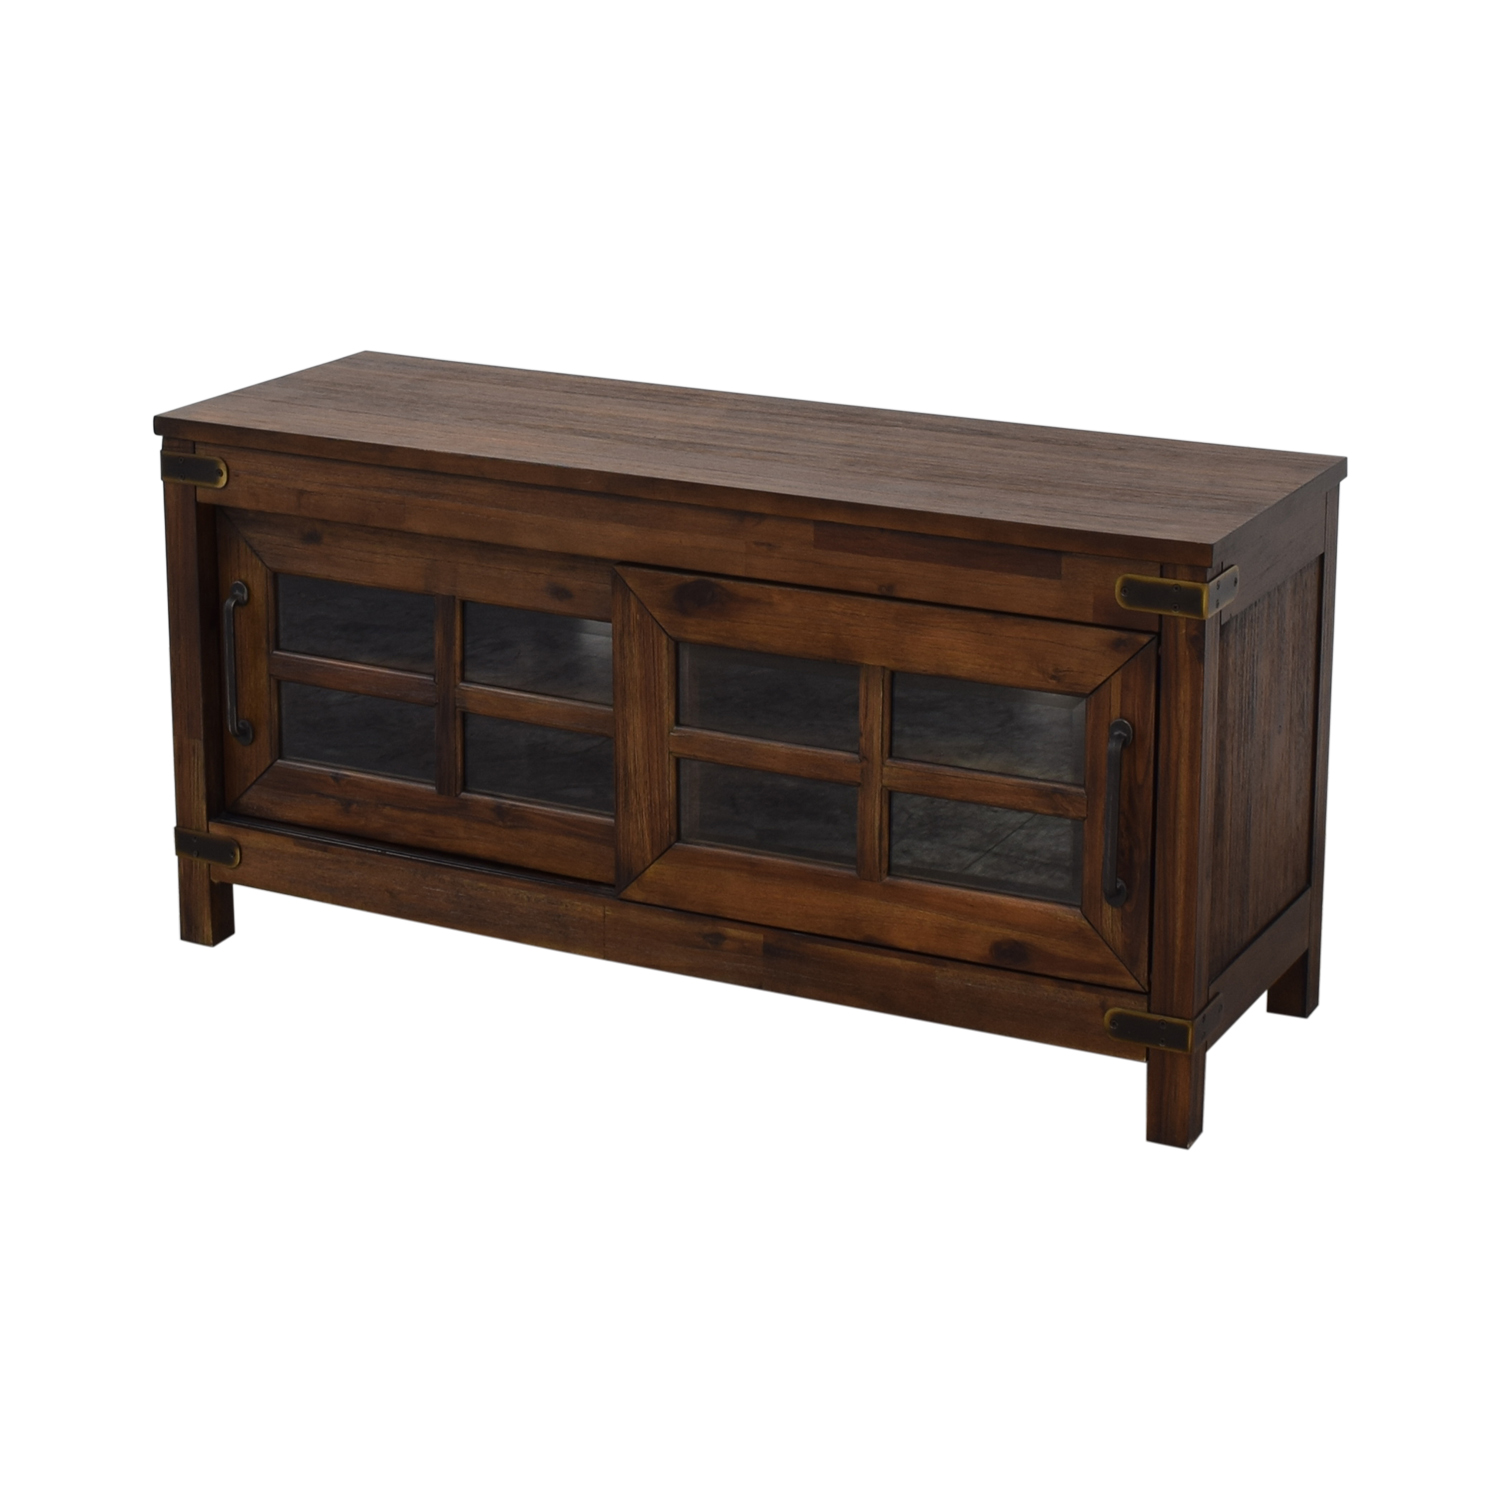 Bob's Discount Furniture Boulder Entertainment Console sale